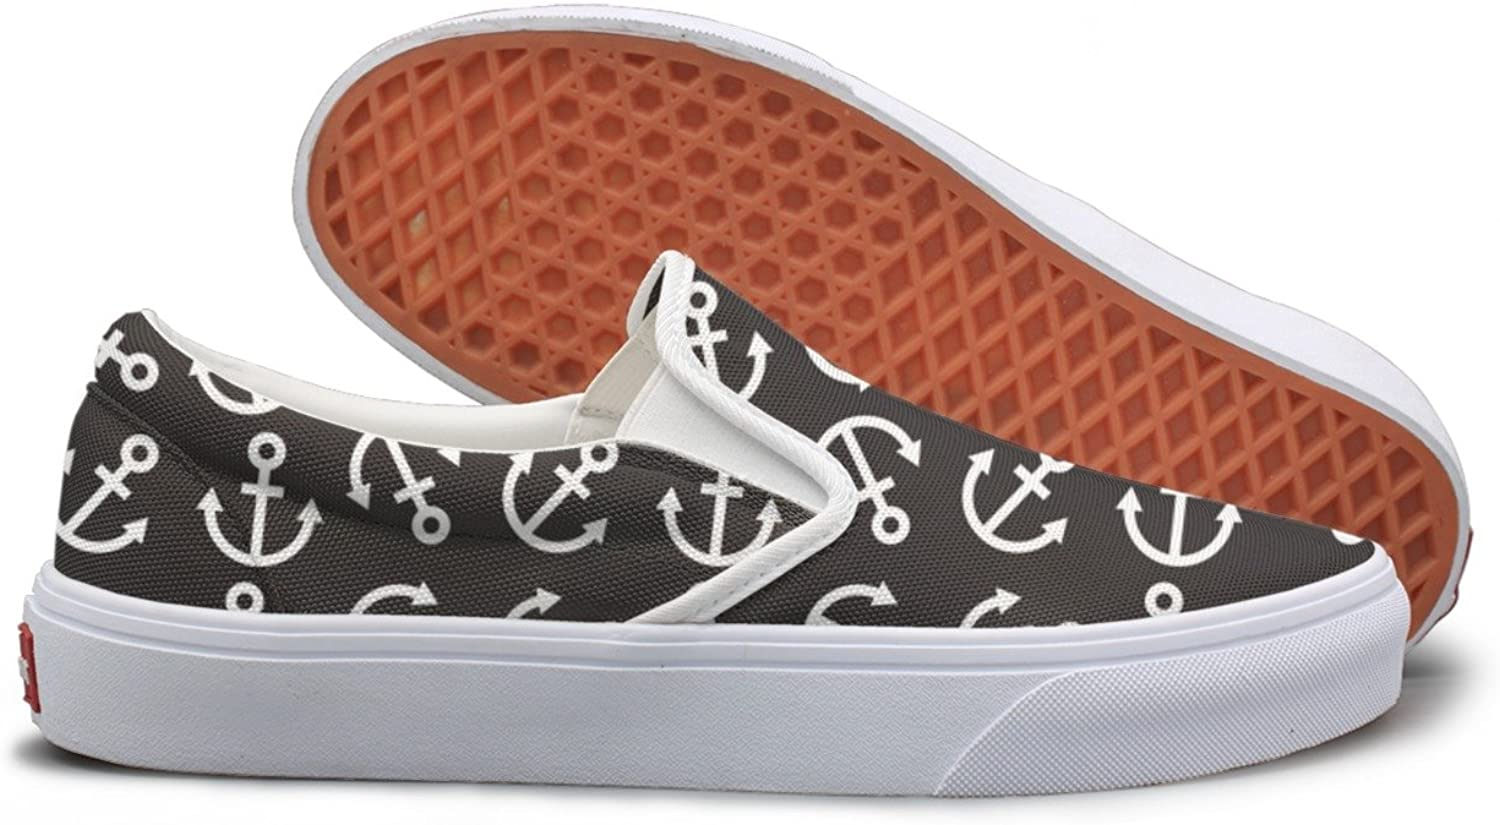 SEERTED Naval Sea Anchors Black Slip On Canvas shoes for Women